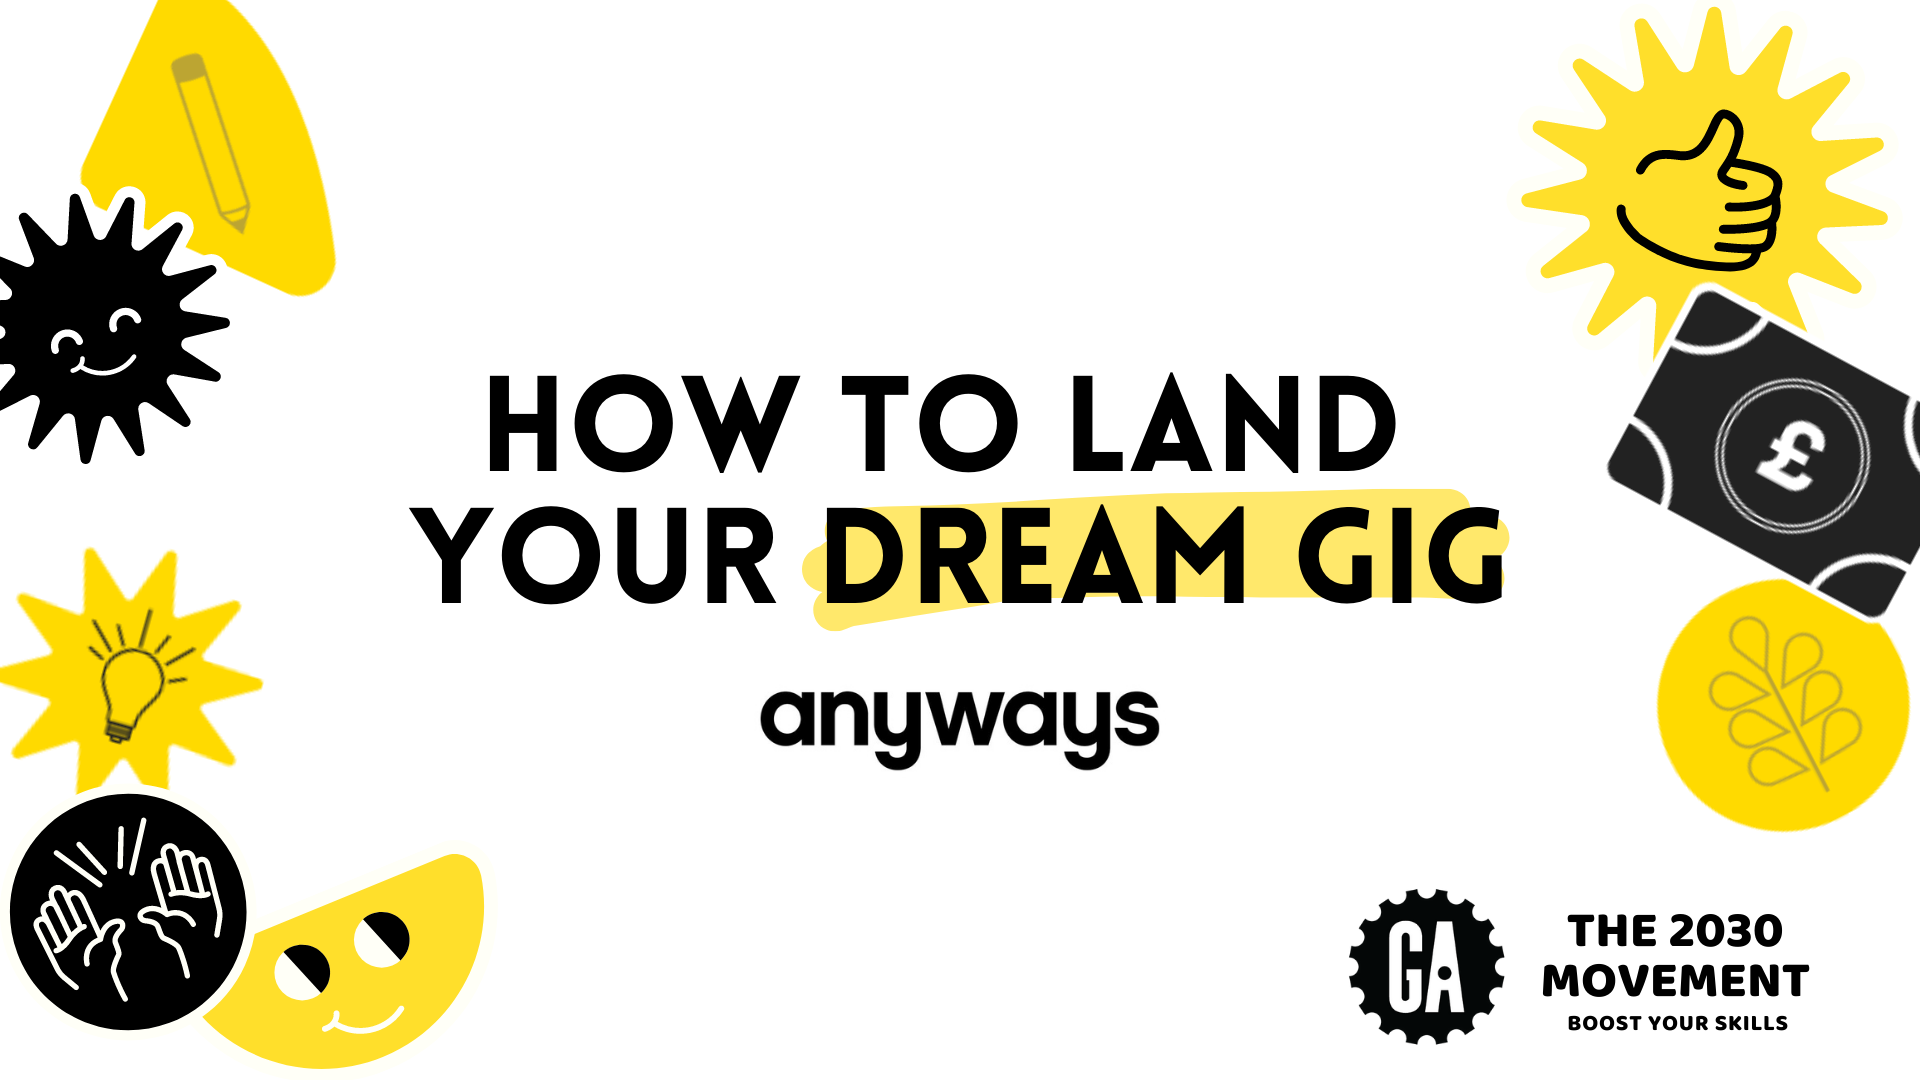 The 2030 Movement: How To Land Your Dream Gig